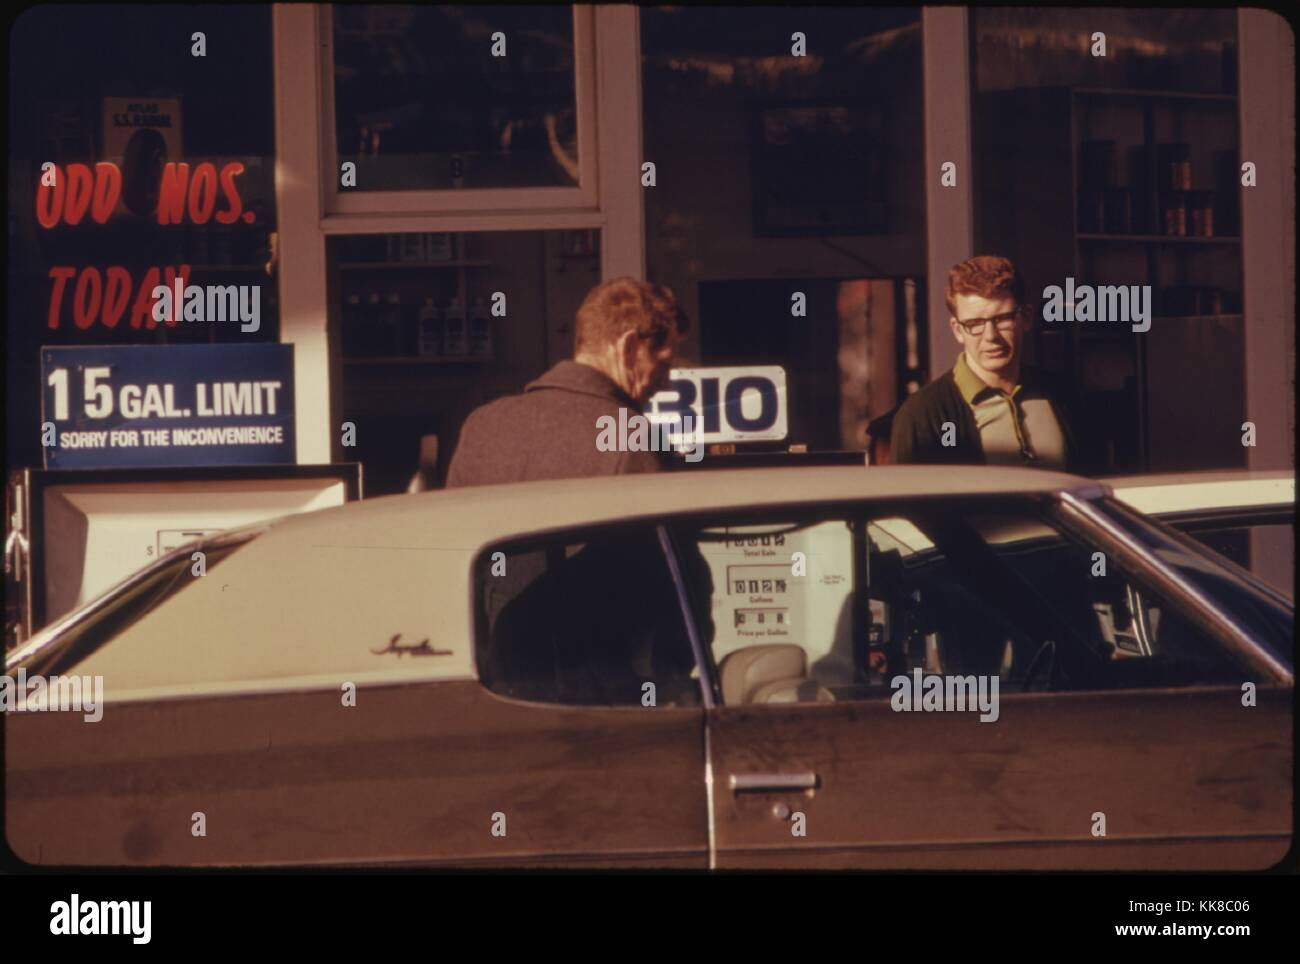 On January 31, 1974, an Odd-Numbered Day, Motorists with Odd-Numbered License Plates Could Obtain Gasoline at This - Stock Image